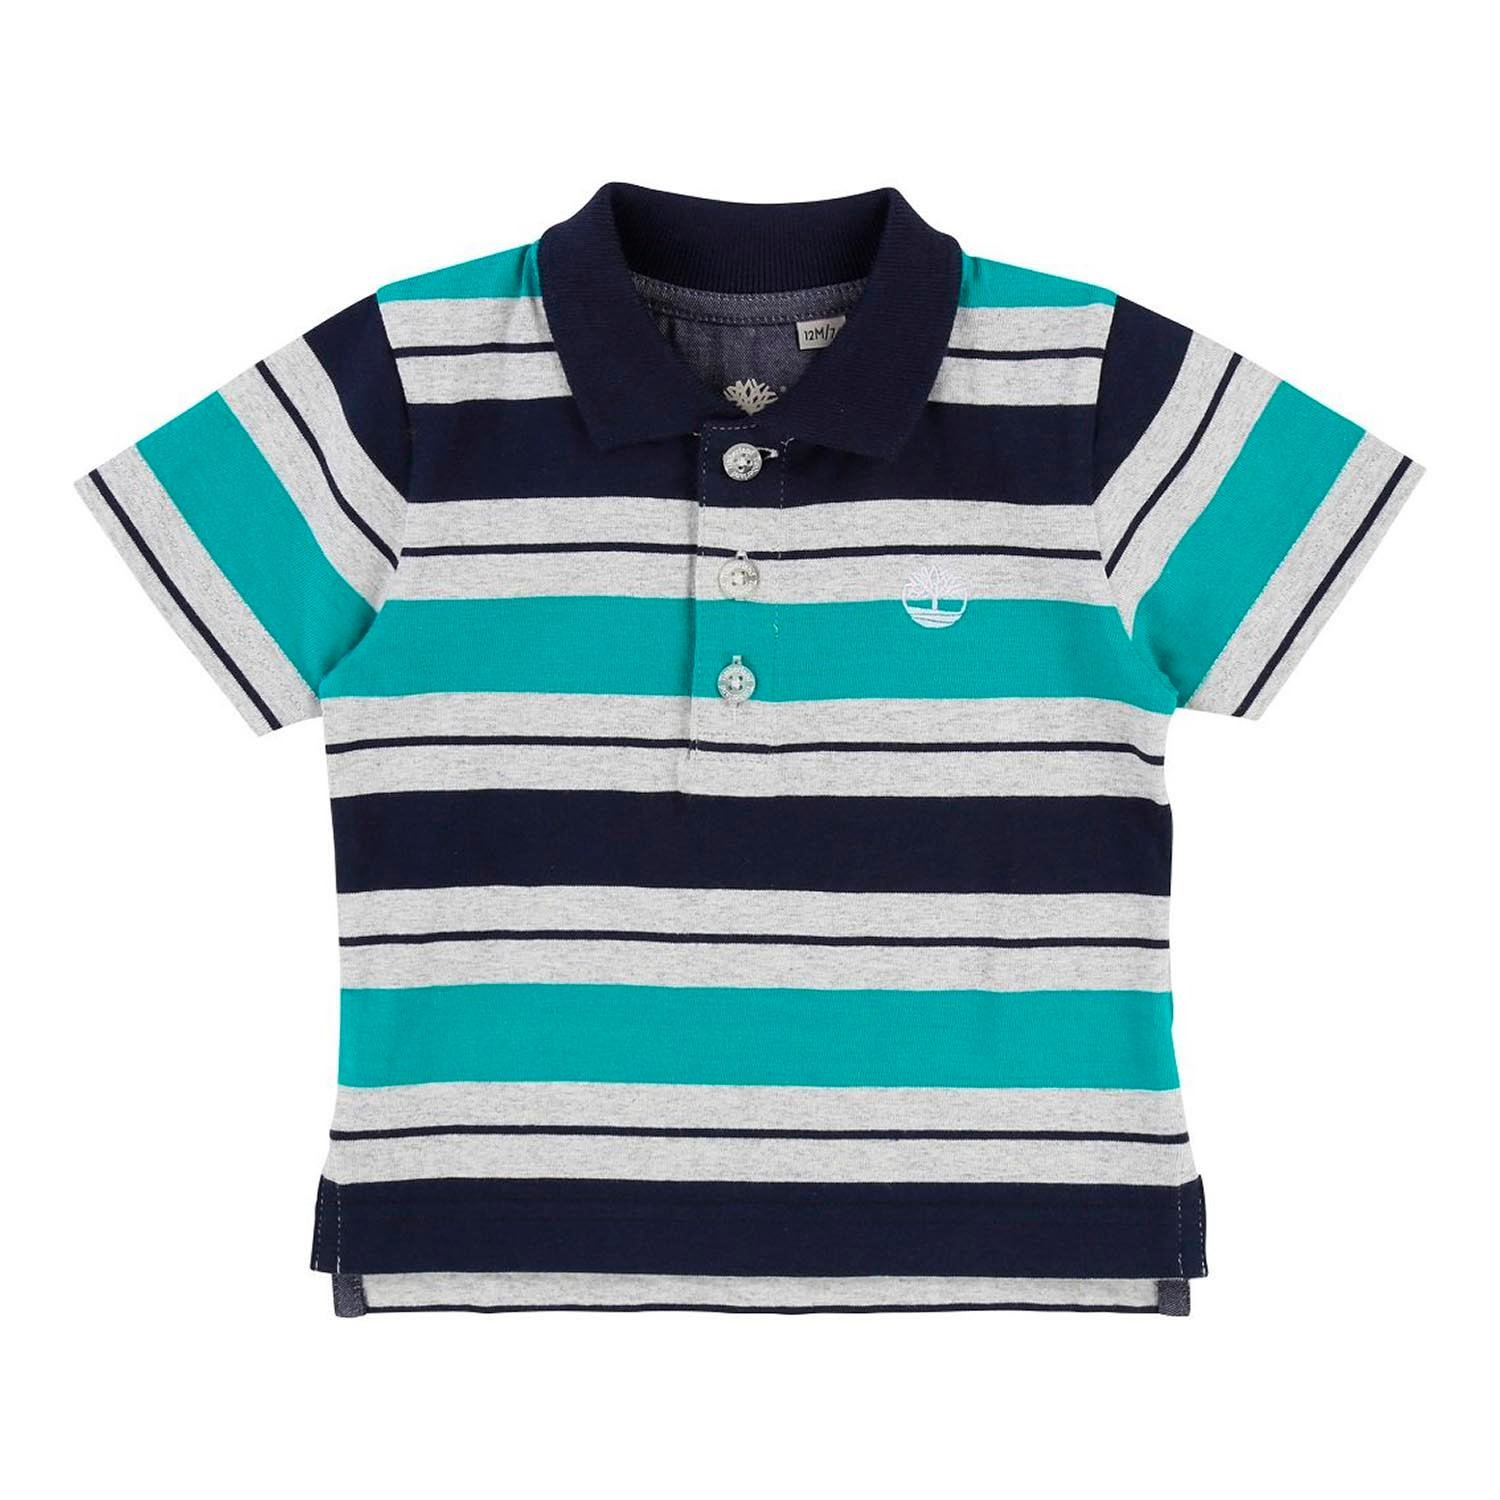 Timberland Baby Boys Polo Manches Courtes Shirt